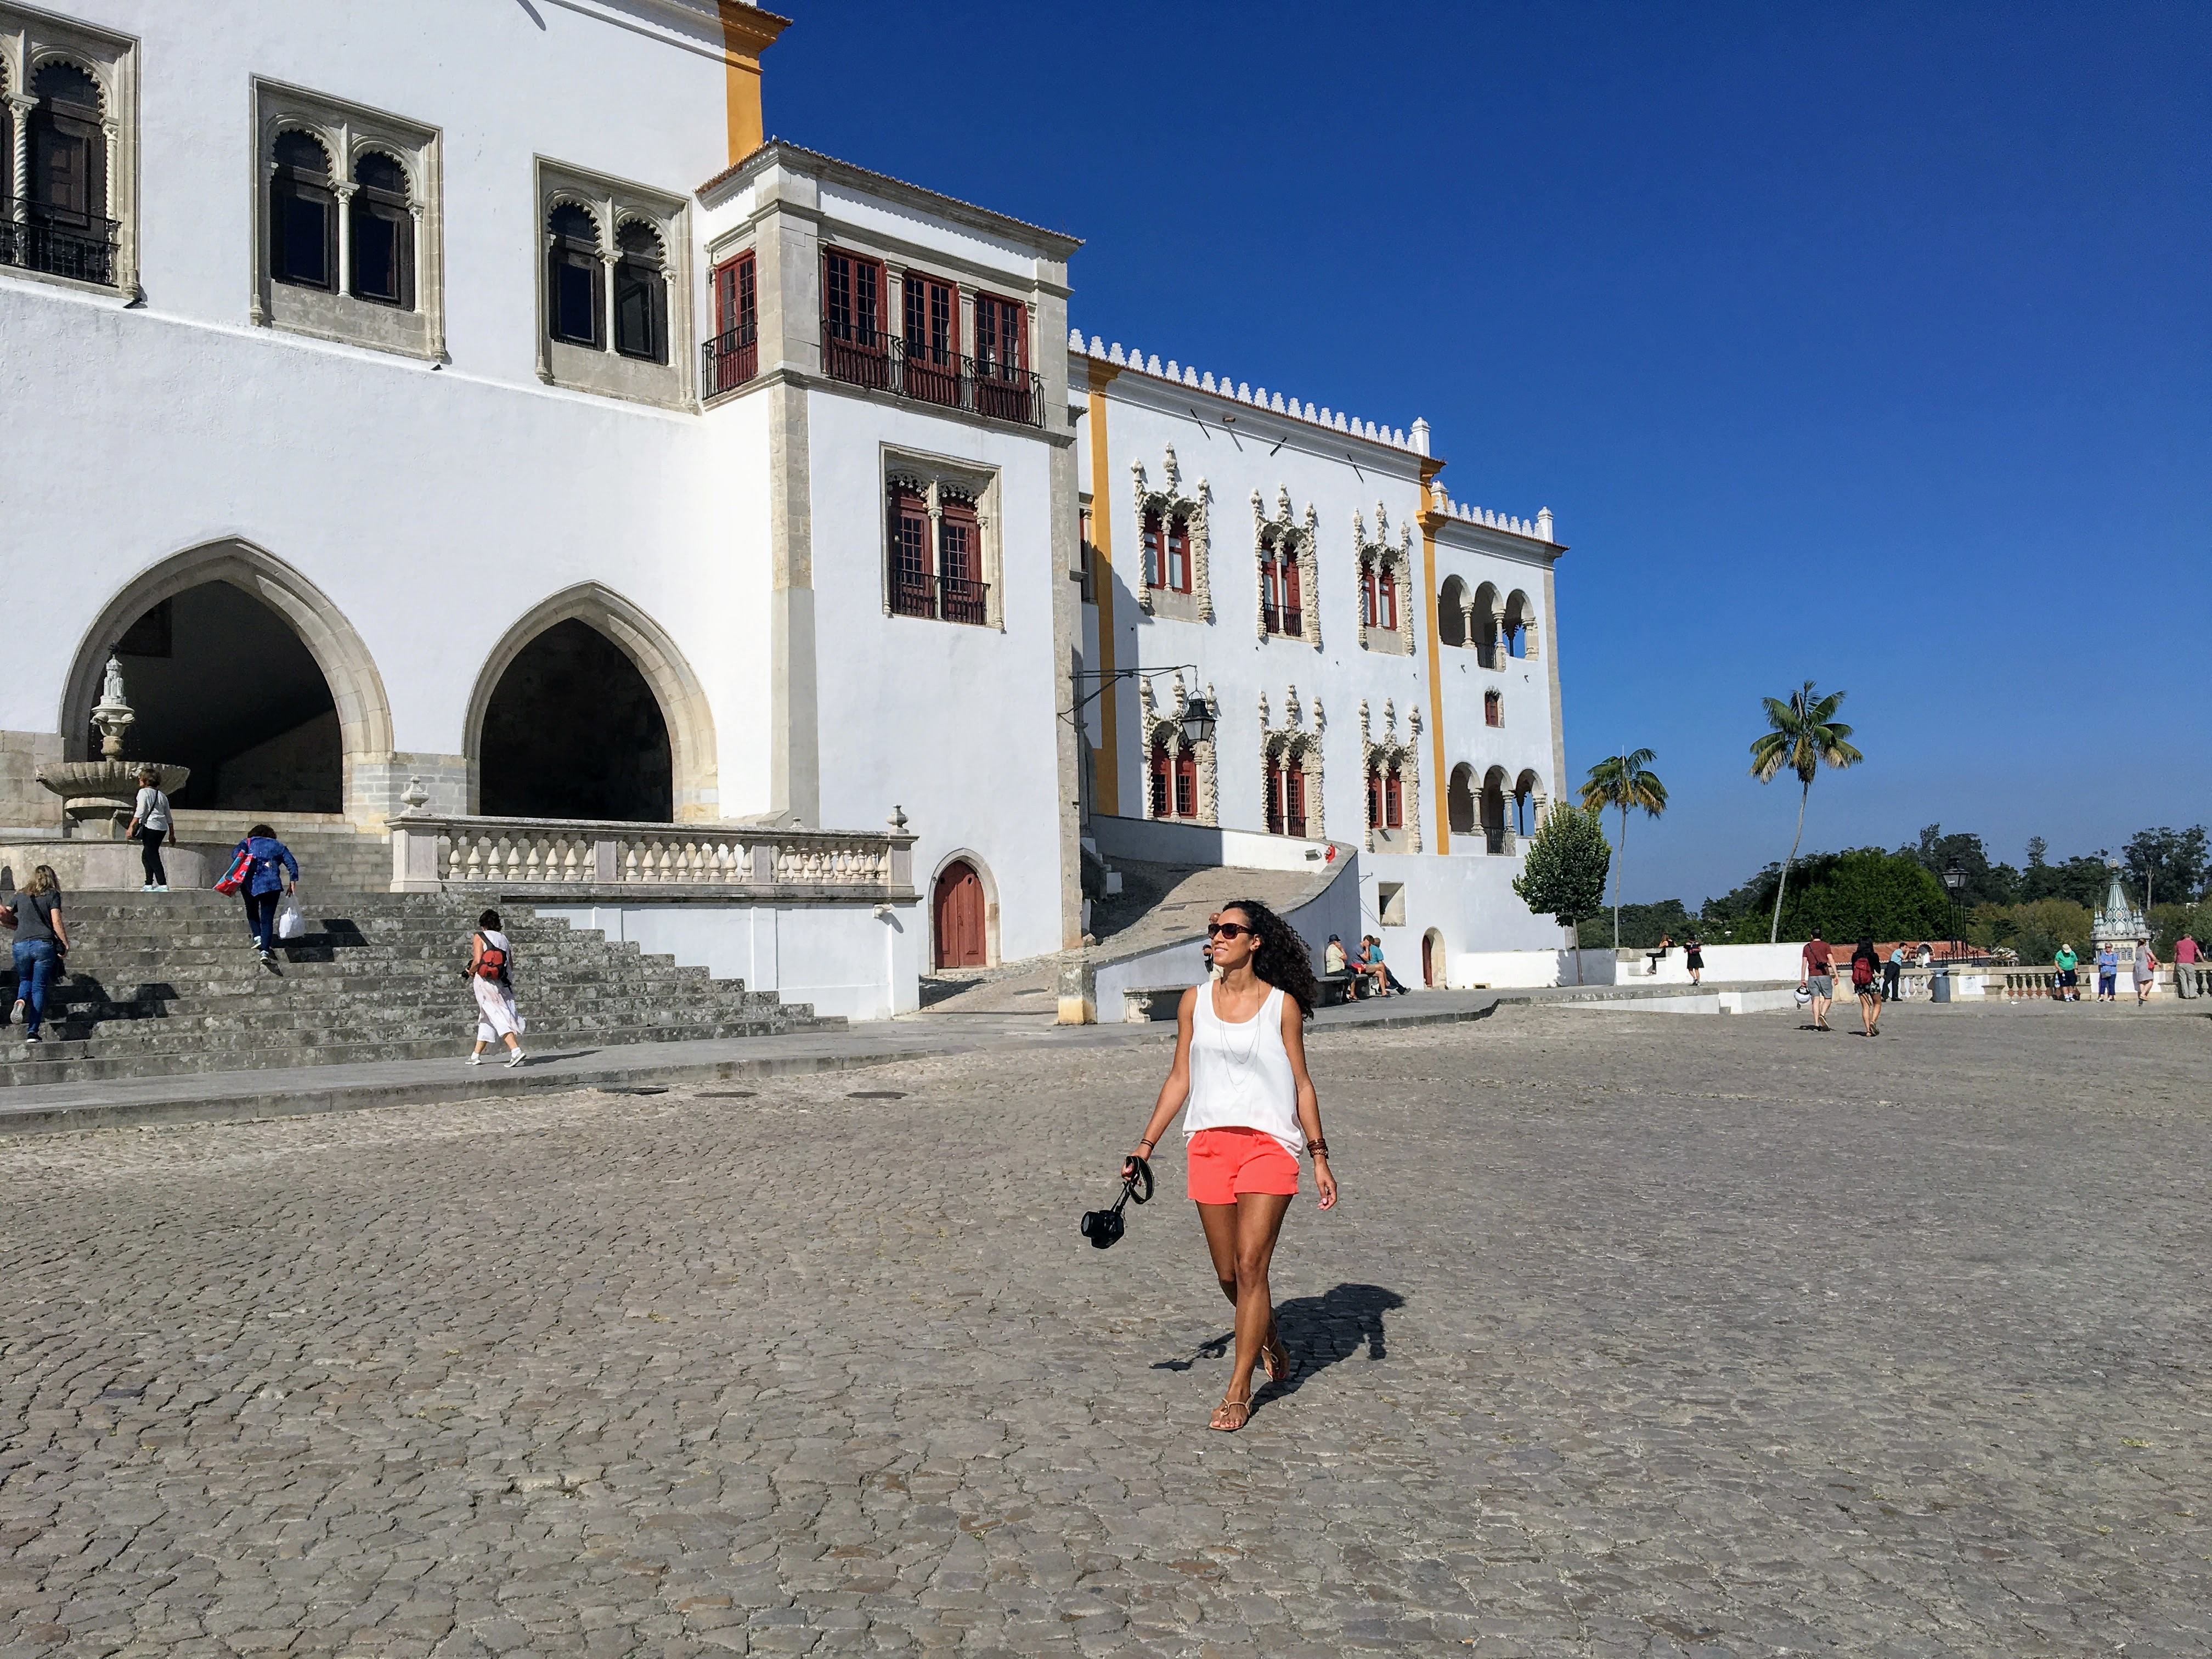 Outside the National Palace in Sintra, Portugal